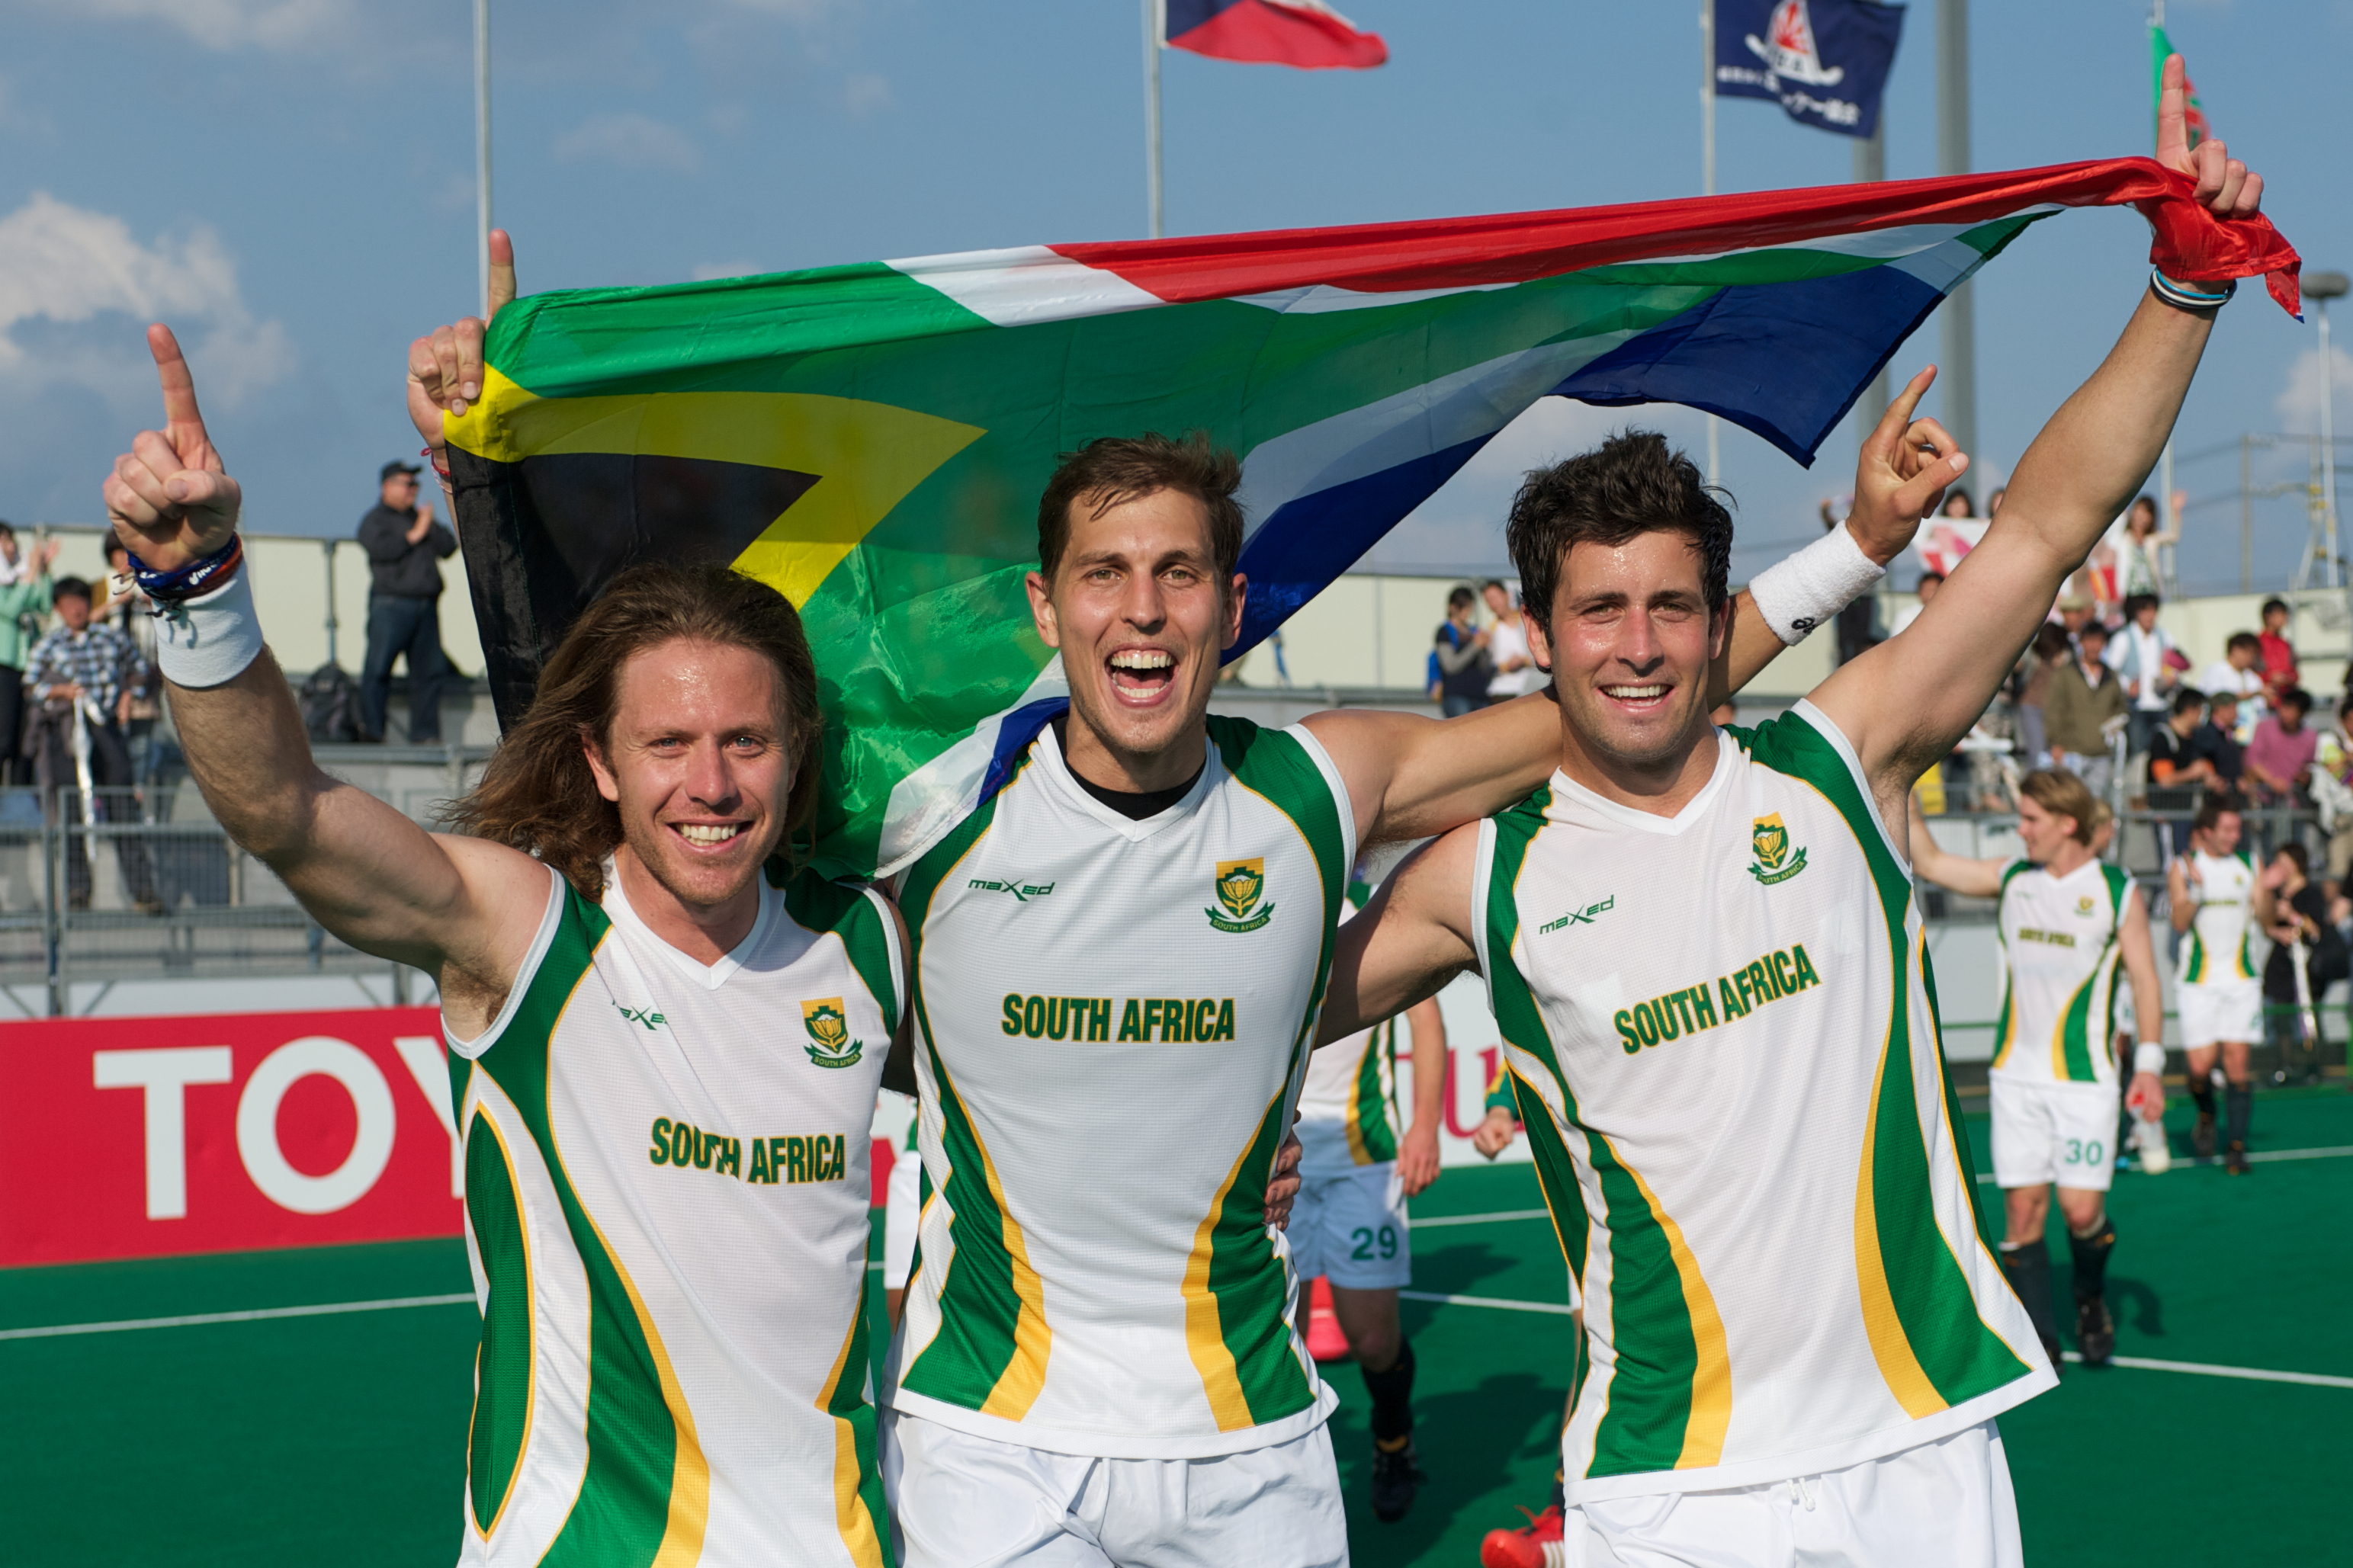 South Africa is going to London, after qualifying for the Games in Japan